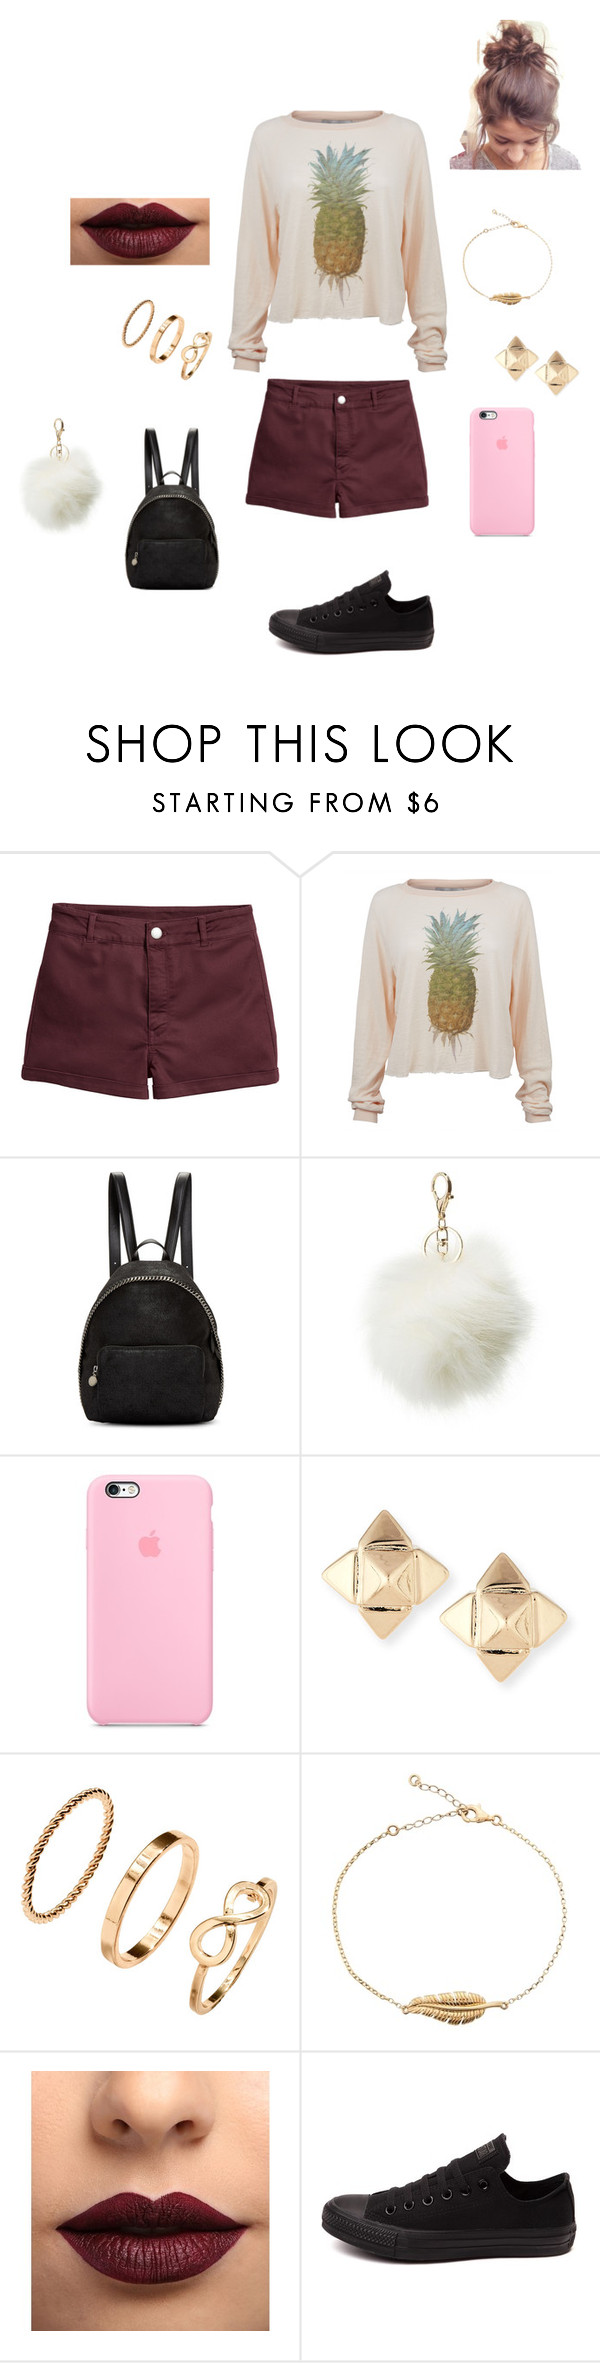 """87tjyfvmb"" by idkwigd ❤ liked on Polyvore featuring Wildfox, STELLA McCARTNEY, Charlotte Russe, Valentino, LASplash and Converse"